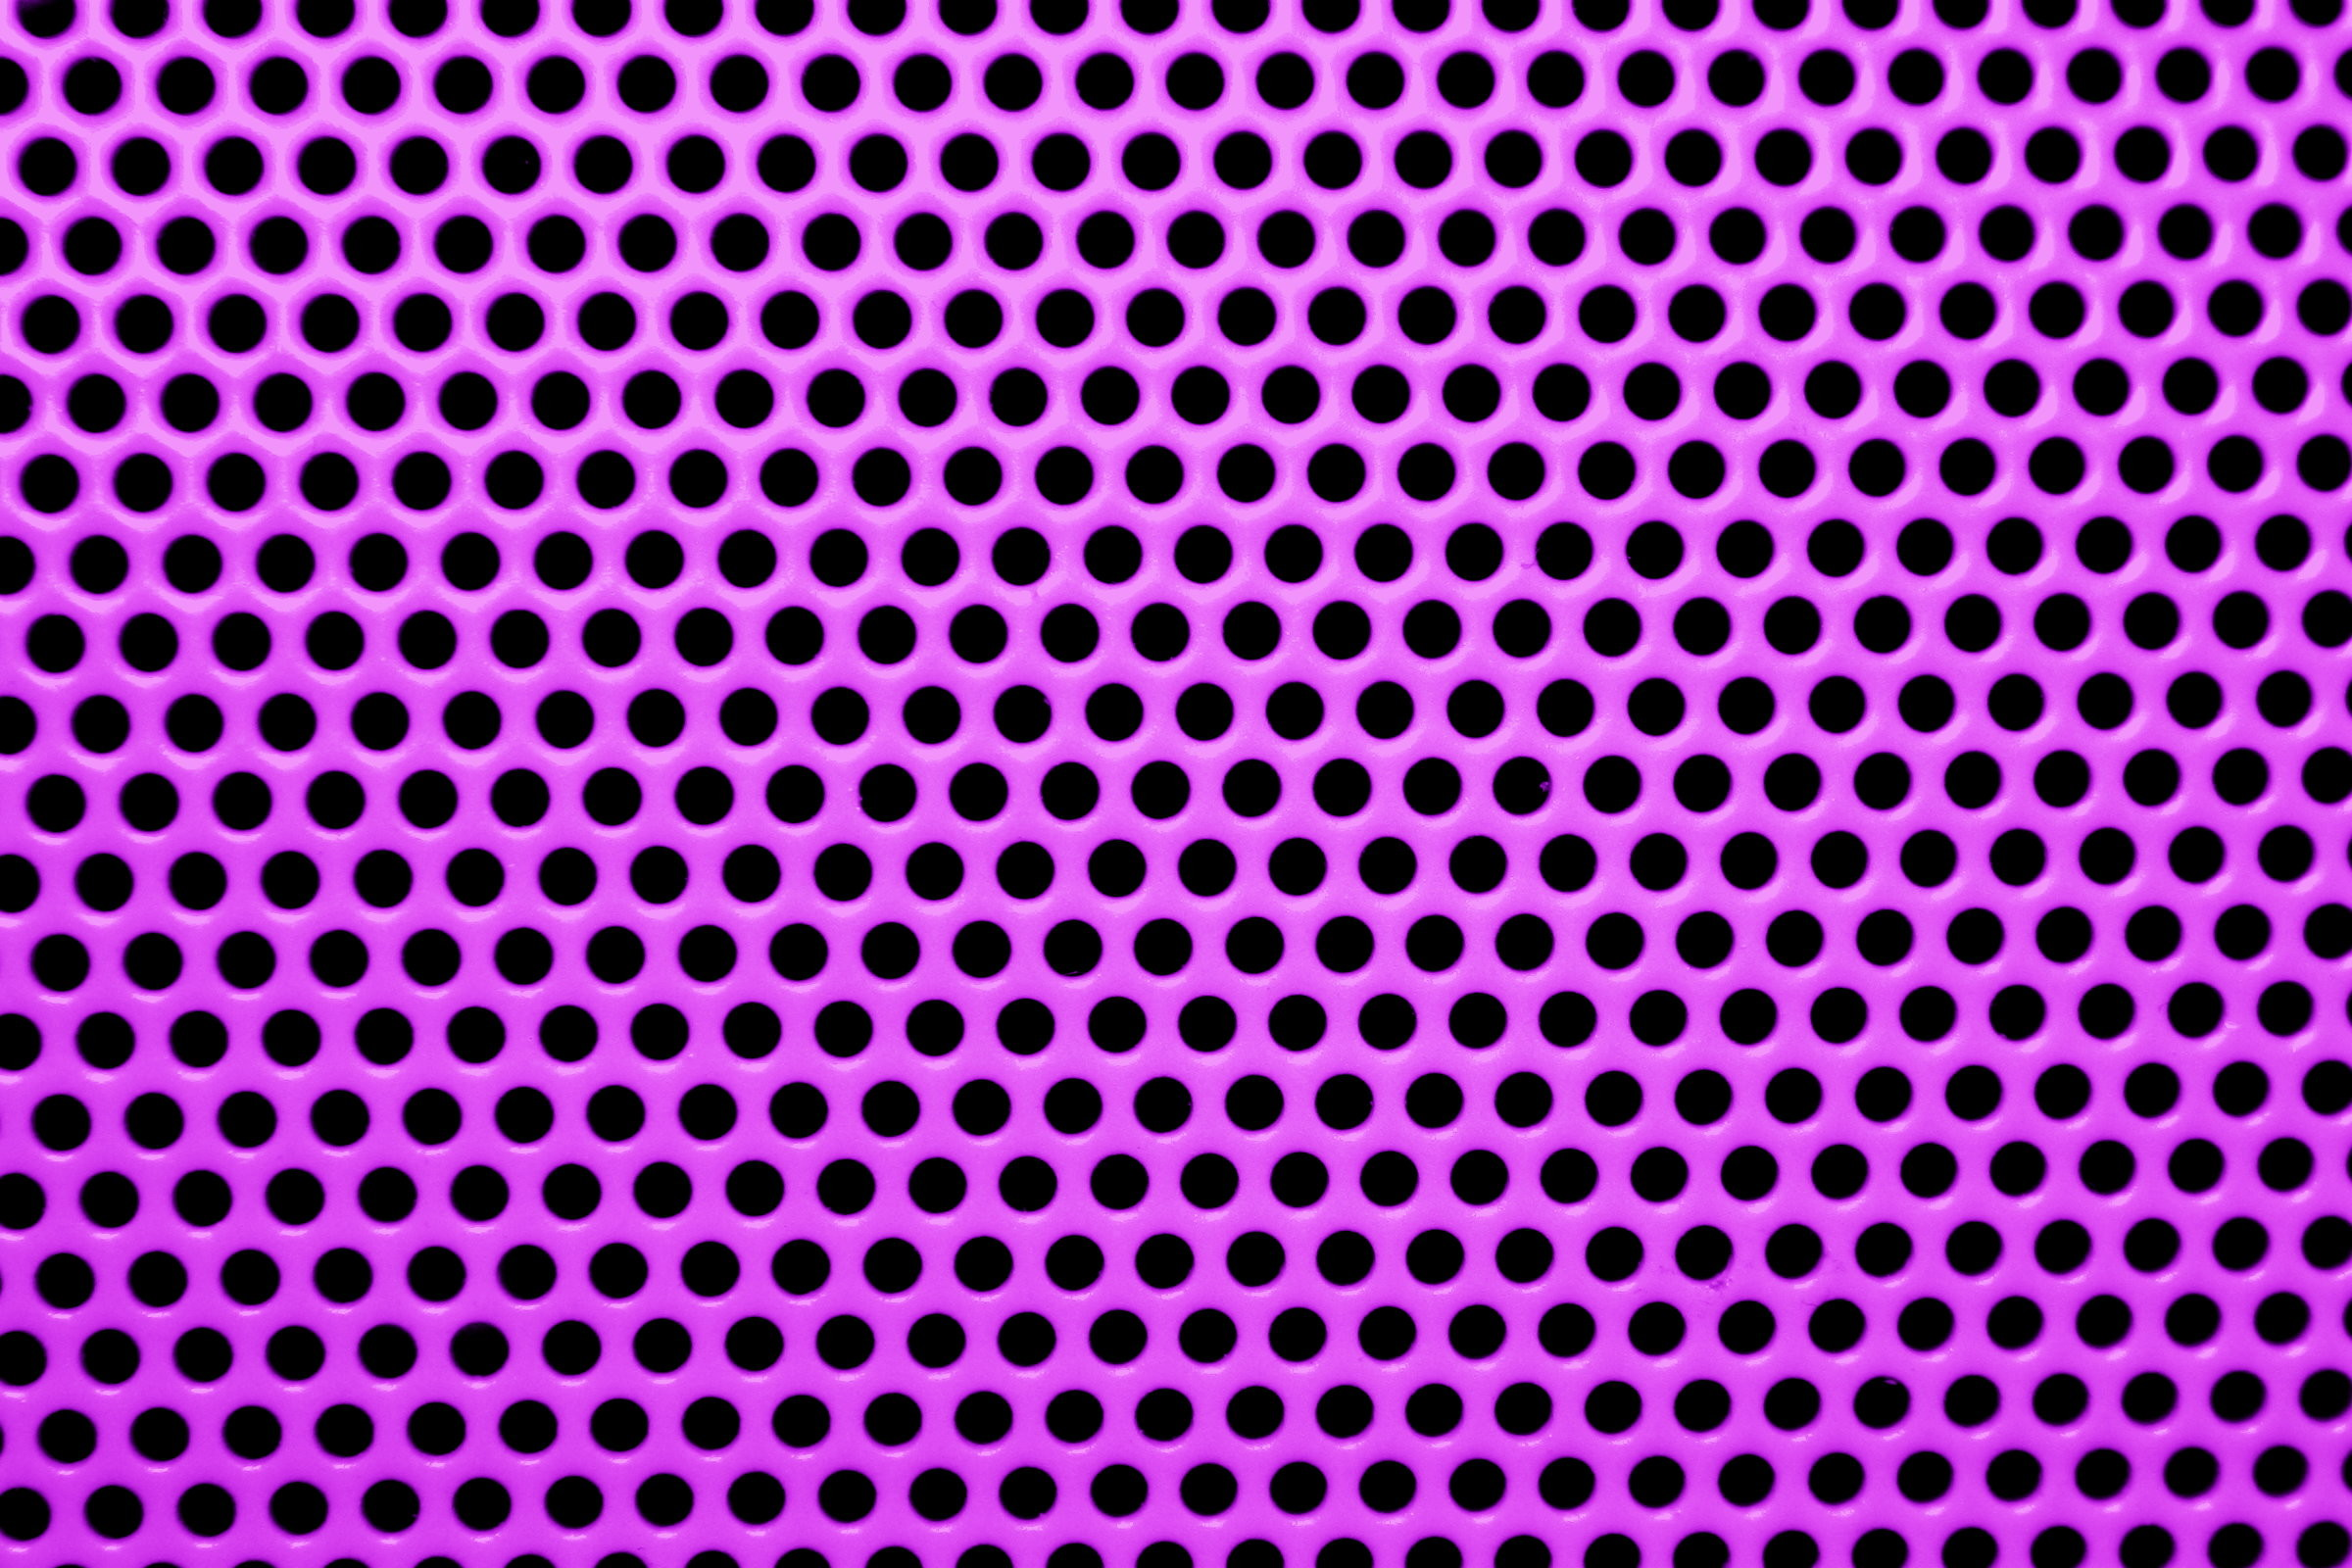 Res: 2400x1600, Purple Metal Mesh with Round Holes Texture